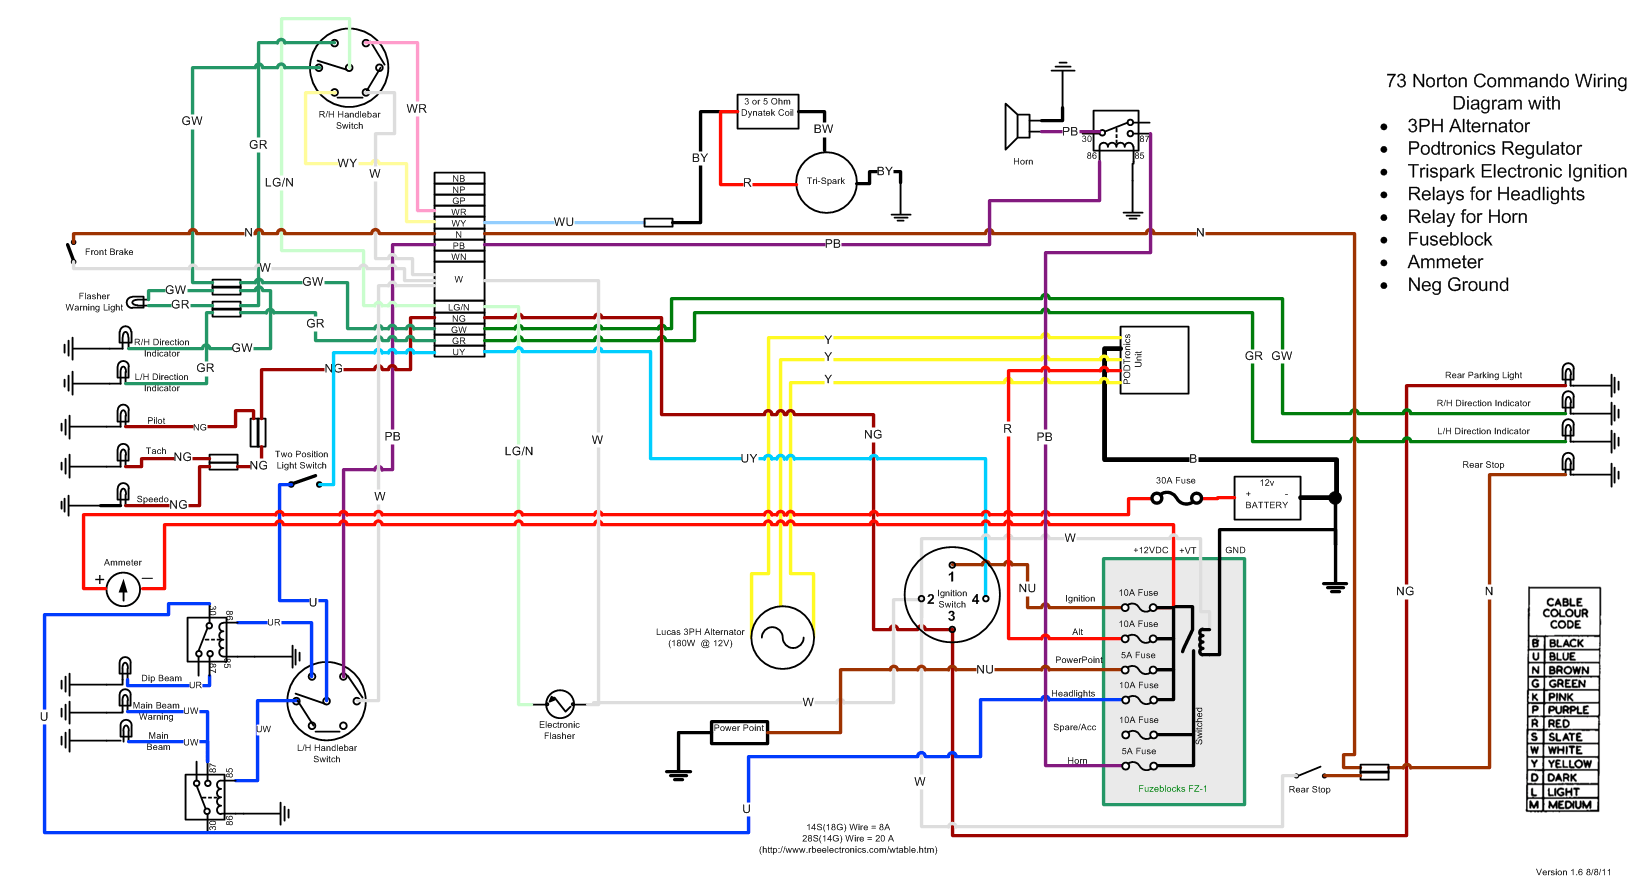 73wiringdiagram?resize\\\\=665%2C359 honda cn250 cdi wiring diagram 6 wire cdi box diagram, honda 90 shindengen ti-15c cdi wiring diagram at edmiracle.co